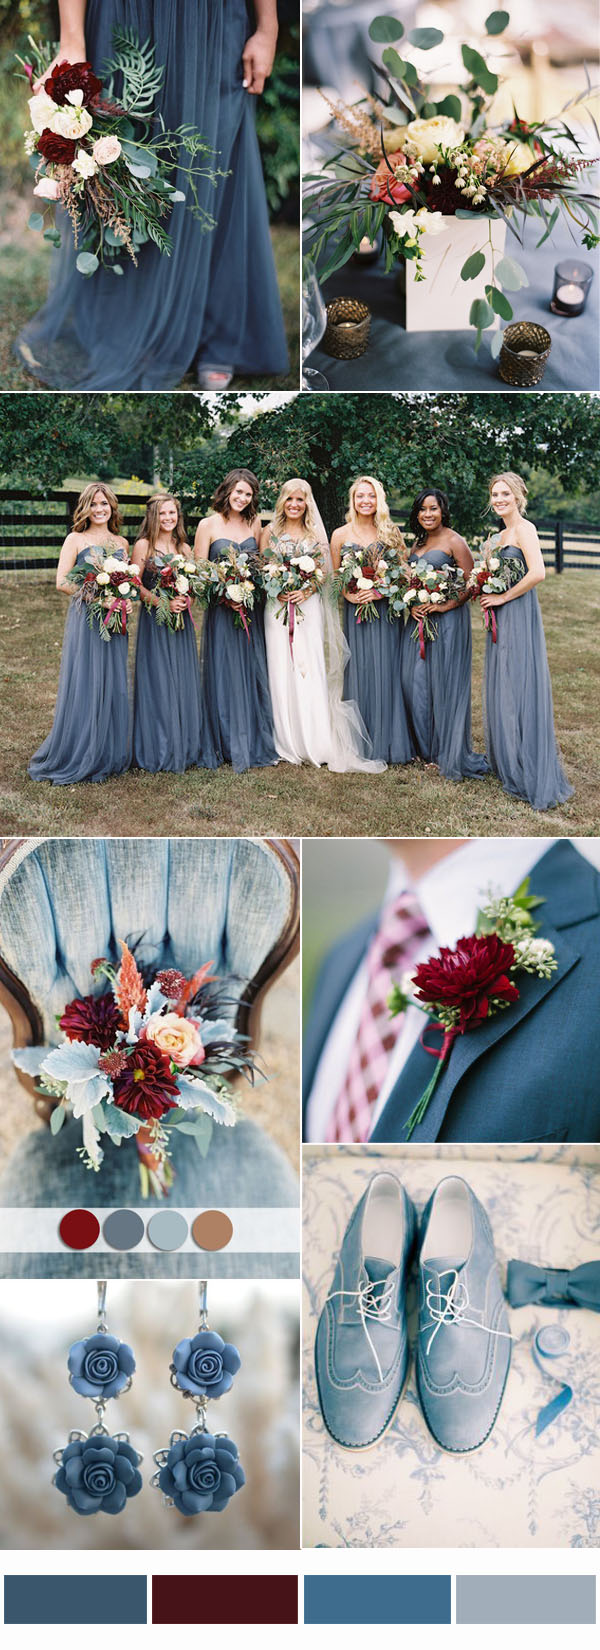 dusty-blue-and-burgundy-Wedding-Color-Combo-Ideas